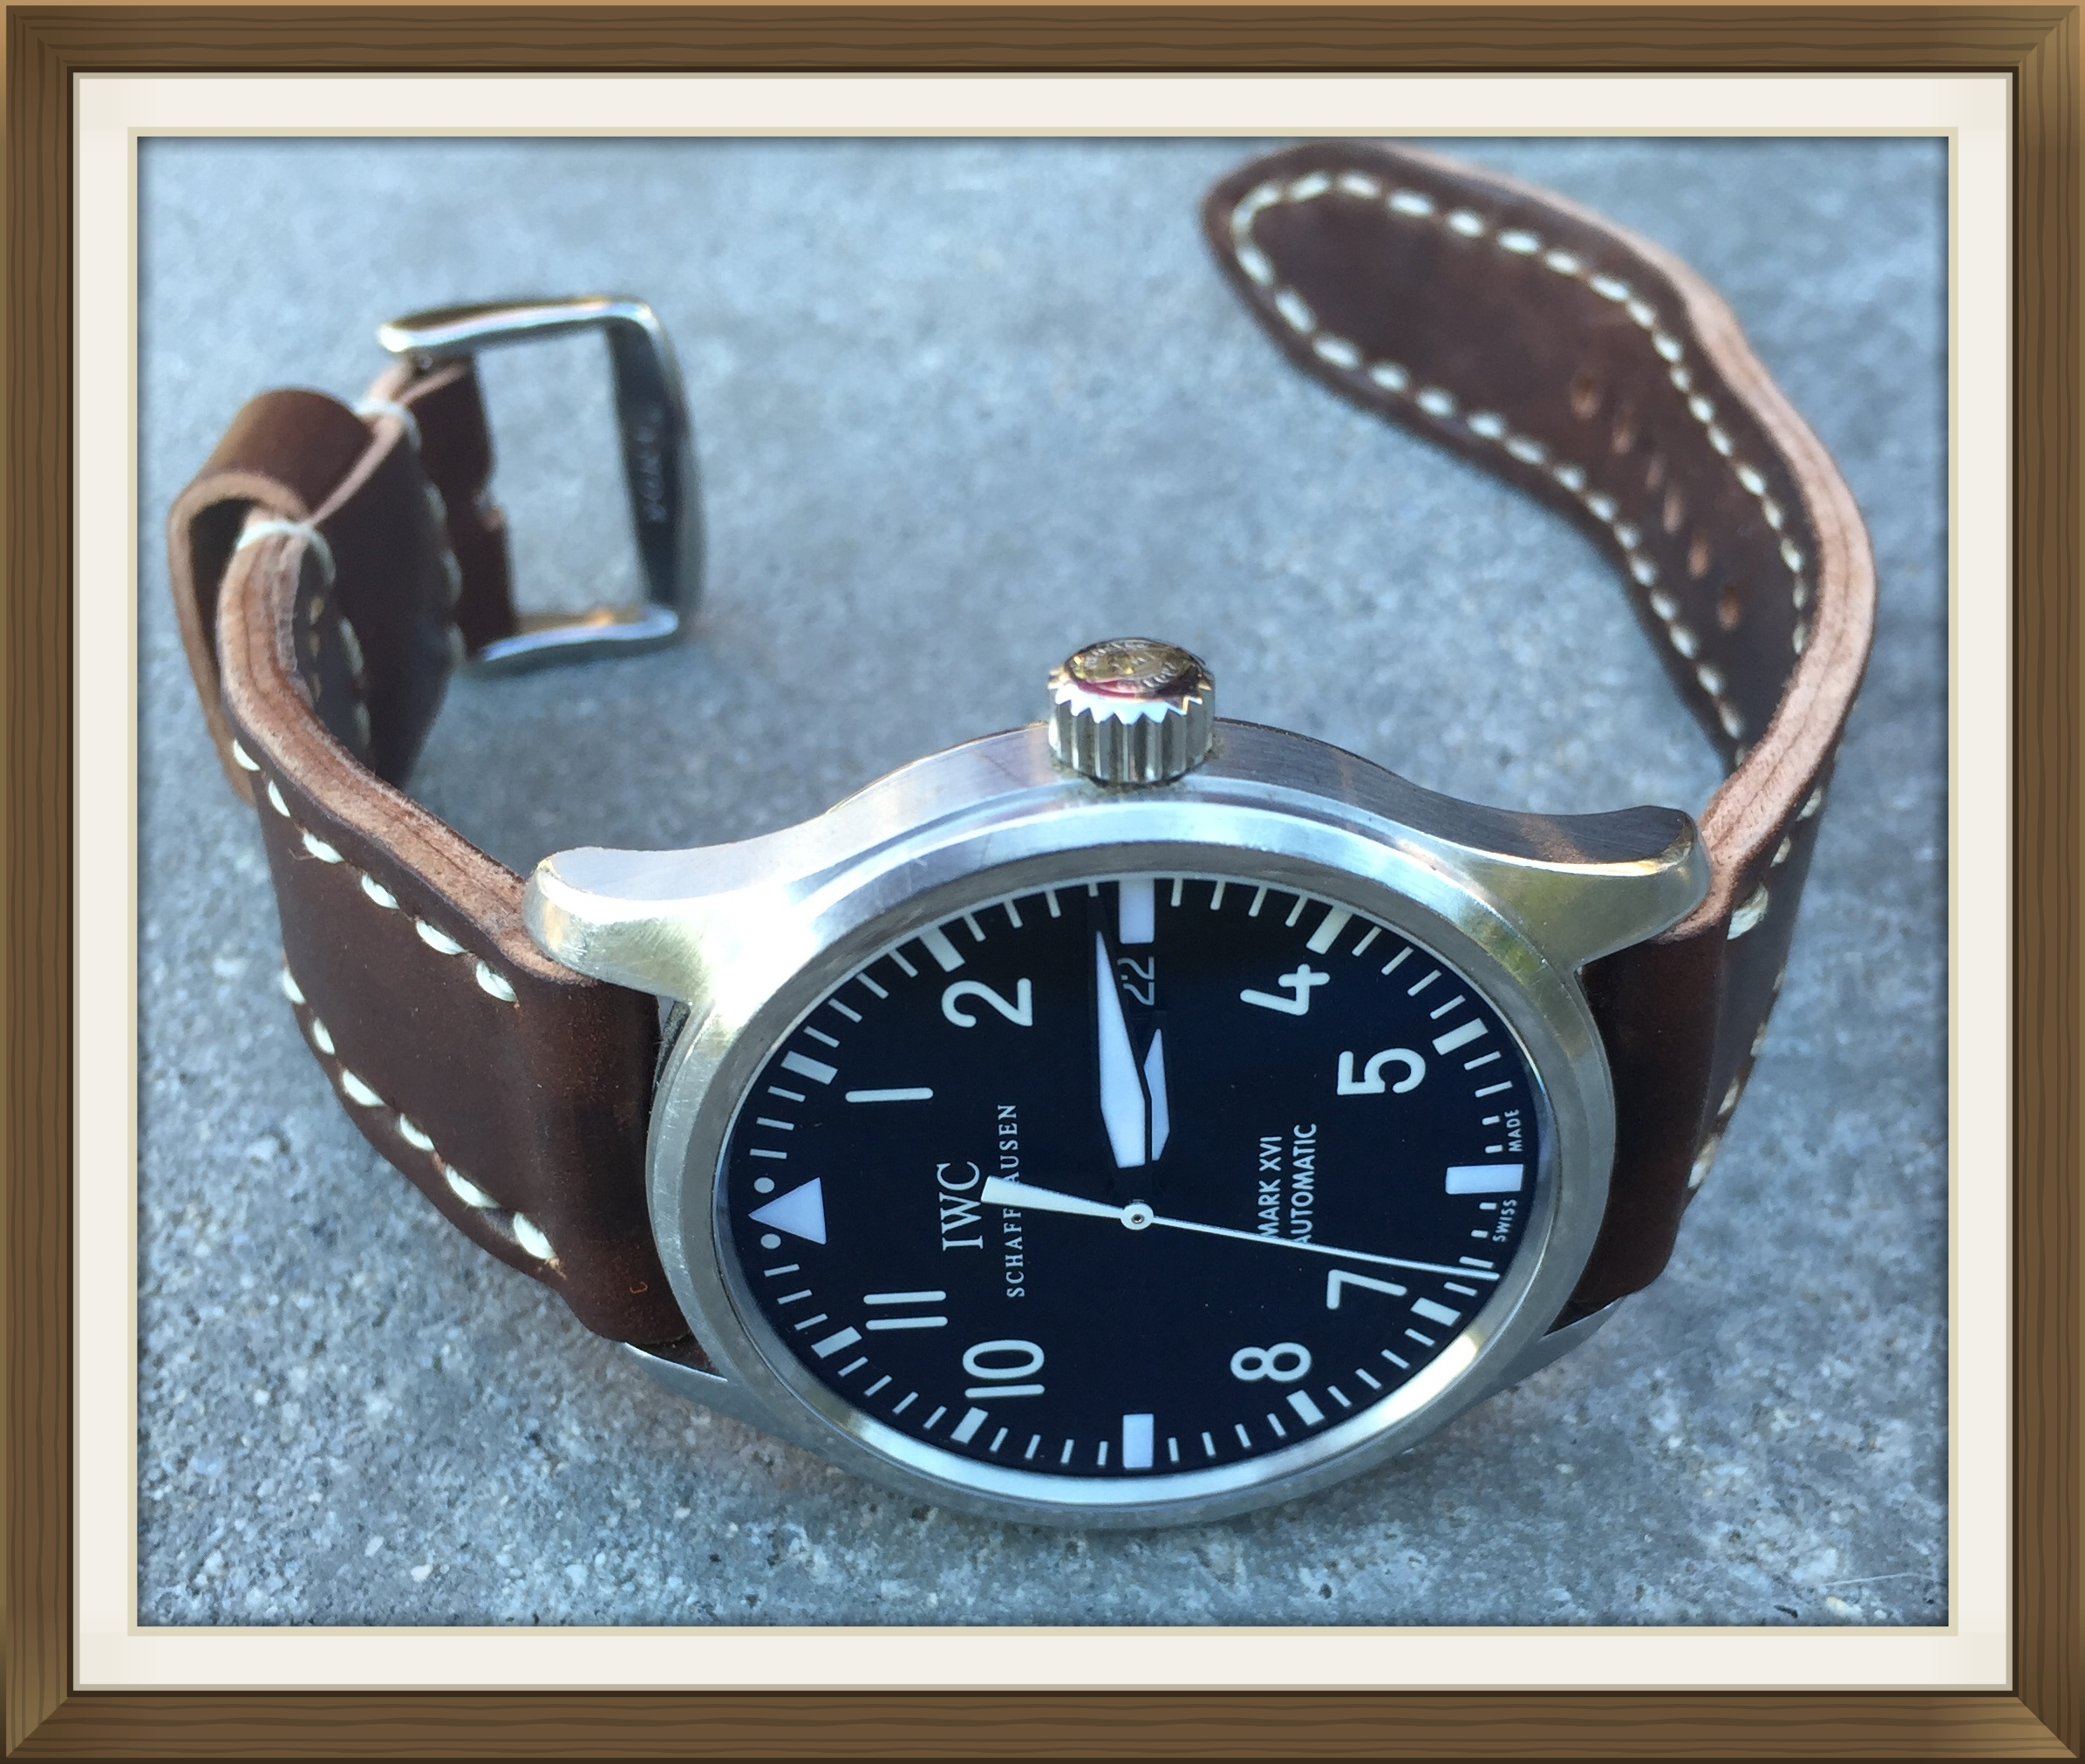 IWC Mk XVI Flieger on Cognac Arts & Crafts.